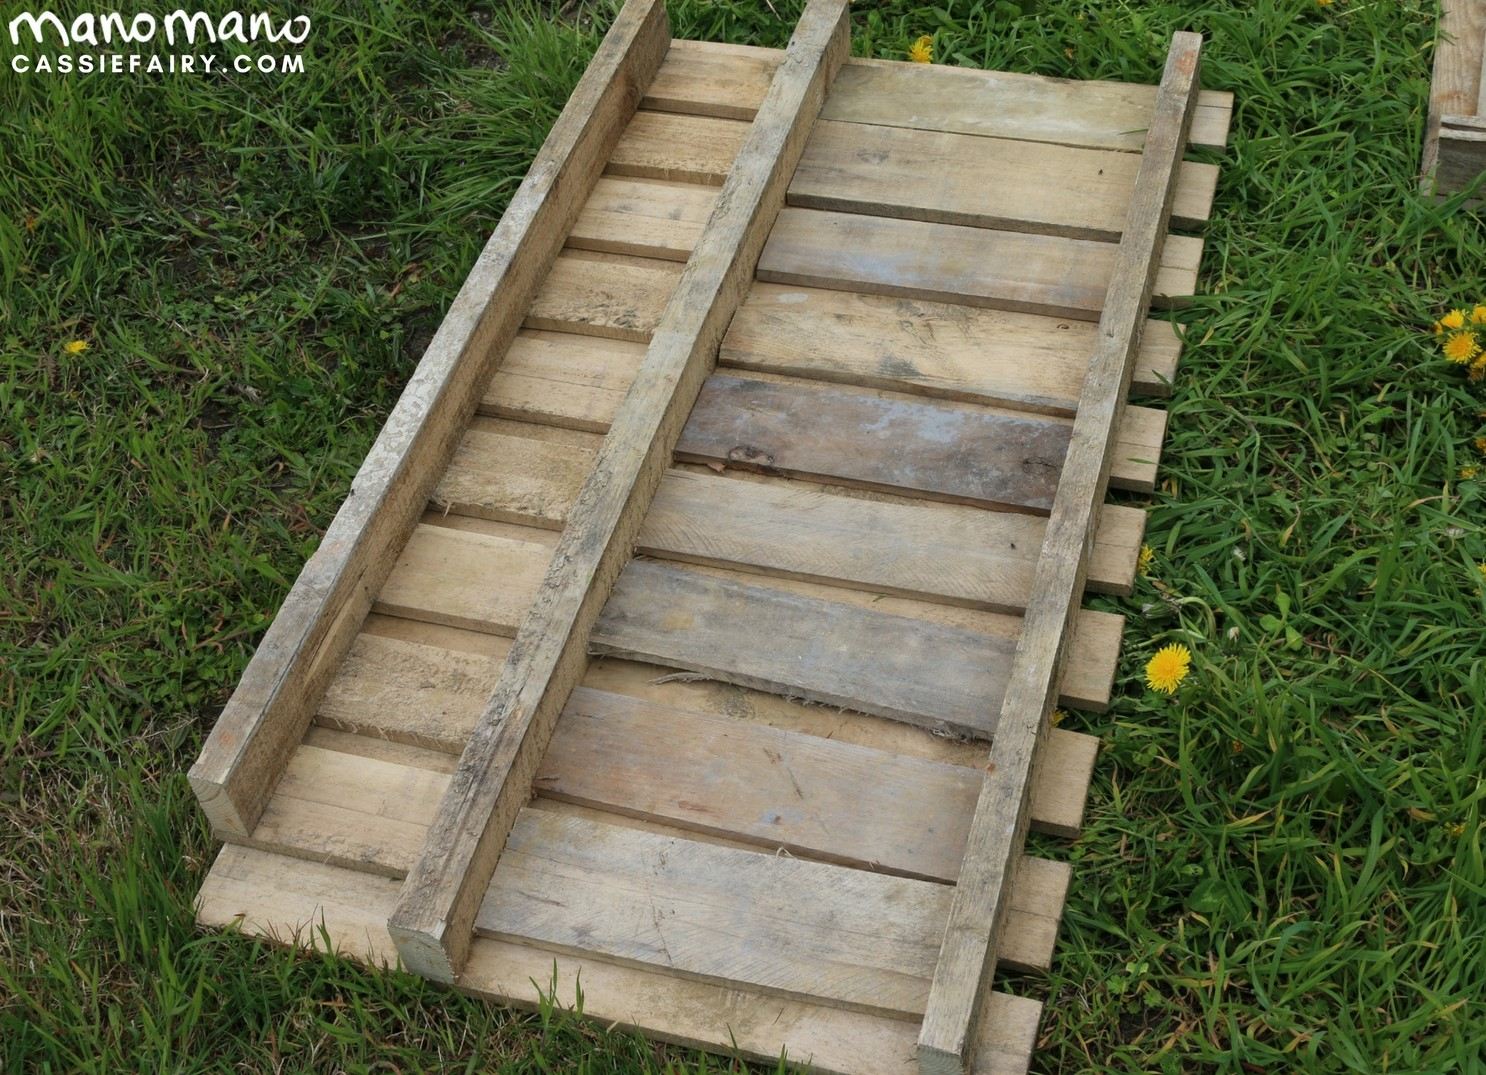 the handy mano manomano diy pallet project measure